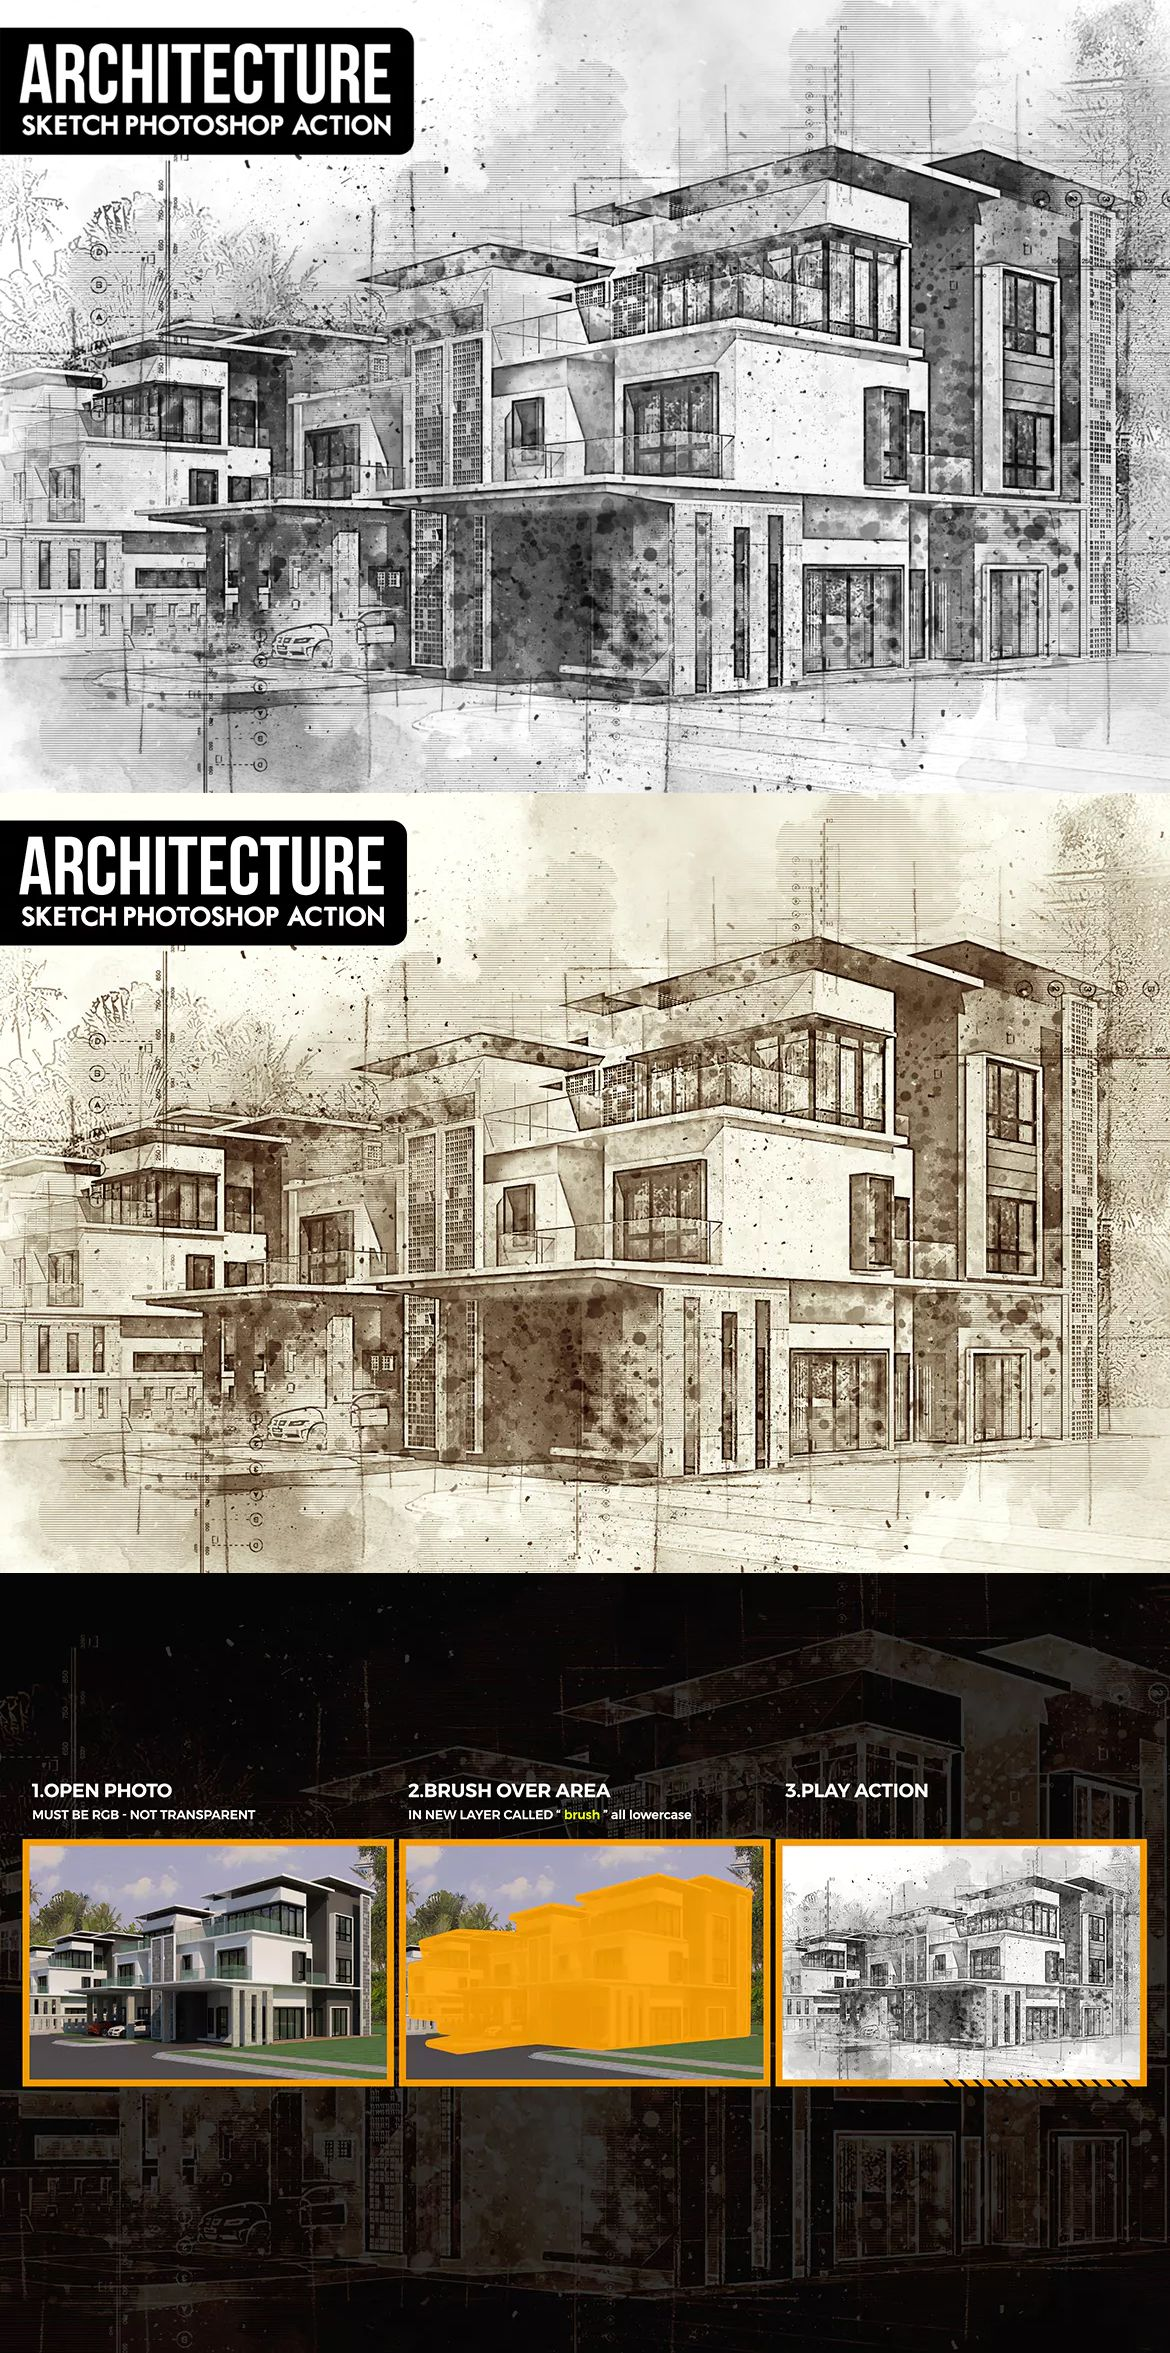 Architecture Sketch Photoshop Action By Ihemalaya On Envato Elements Sketch Photoshop Photoshop Actions Architecture Sketch